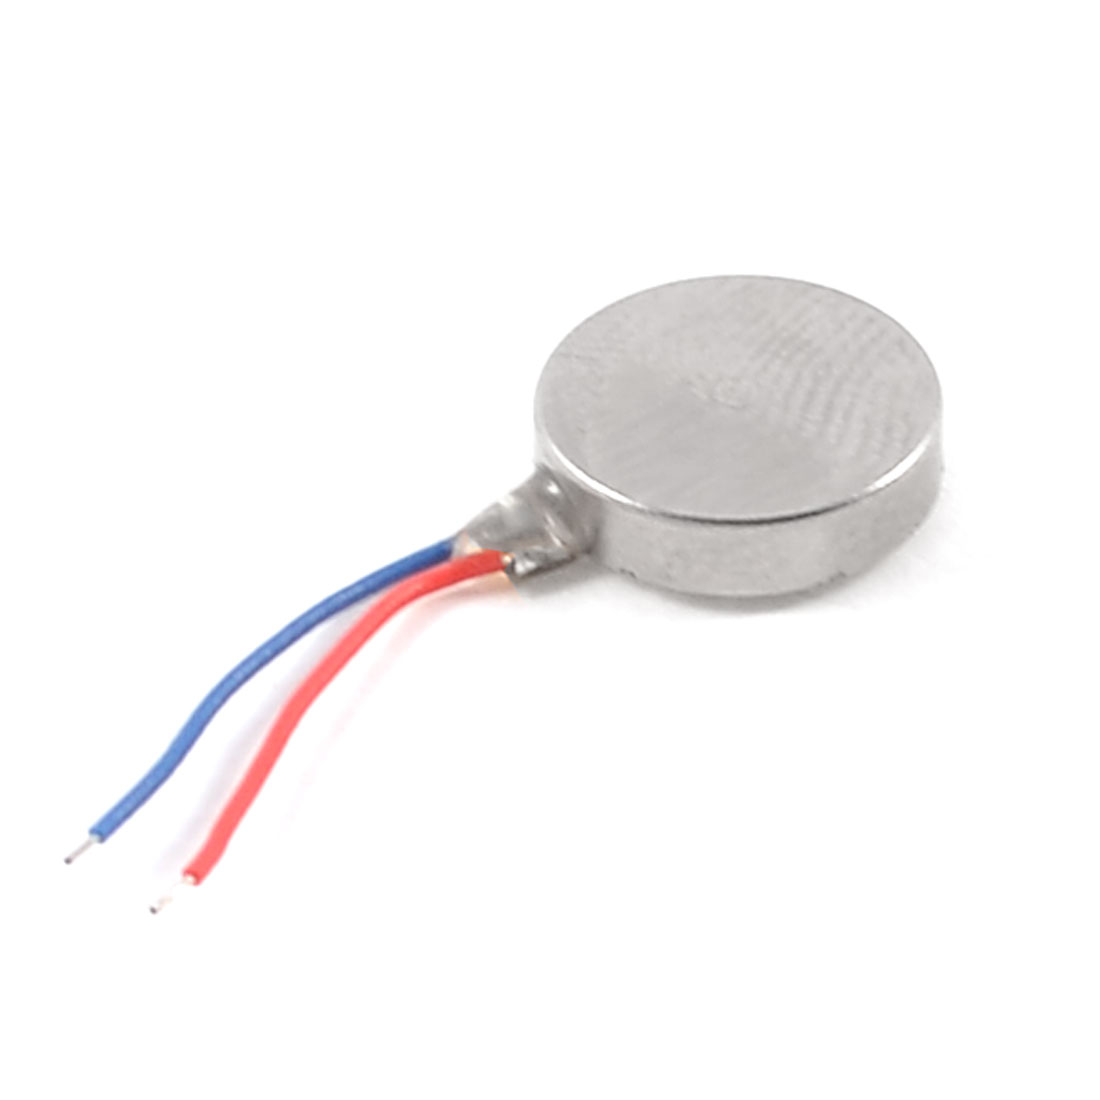 DC-3V-70mA-9000-2000RPM-Cell-Phone-Coin-Flat-Vibrating-Vibration-Mini-Motor